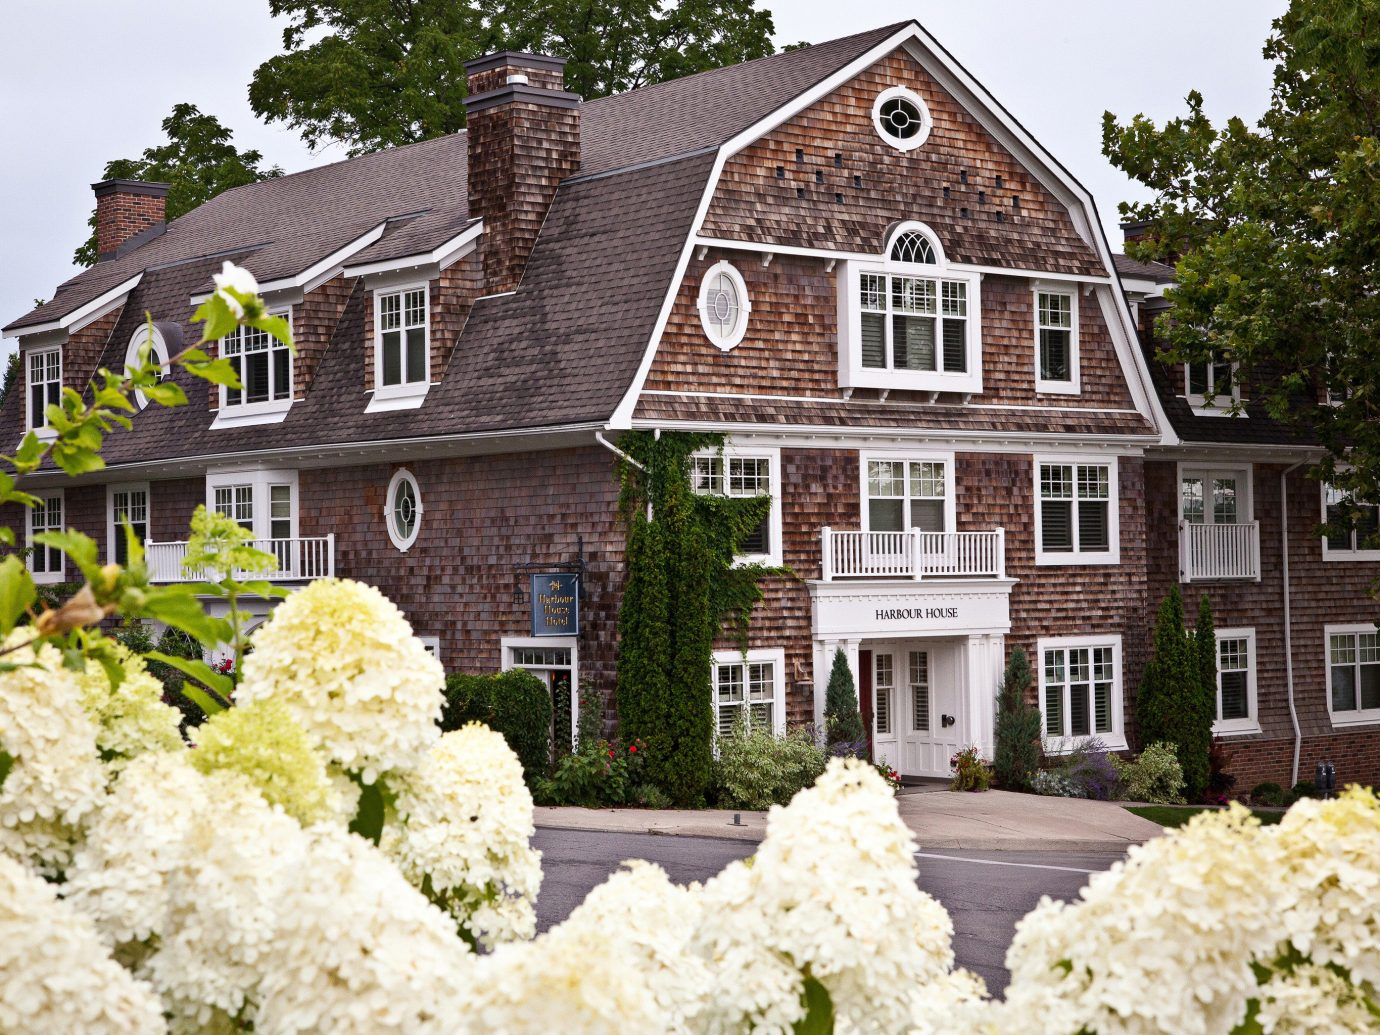 Buildings Exterior Hotels Luxury Romance Romantic Rustic Scenic views building tree outdoor house flower home estate mansion cottage residential area Garden manor house farmhouse